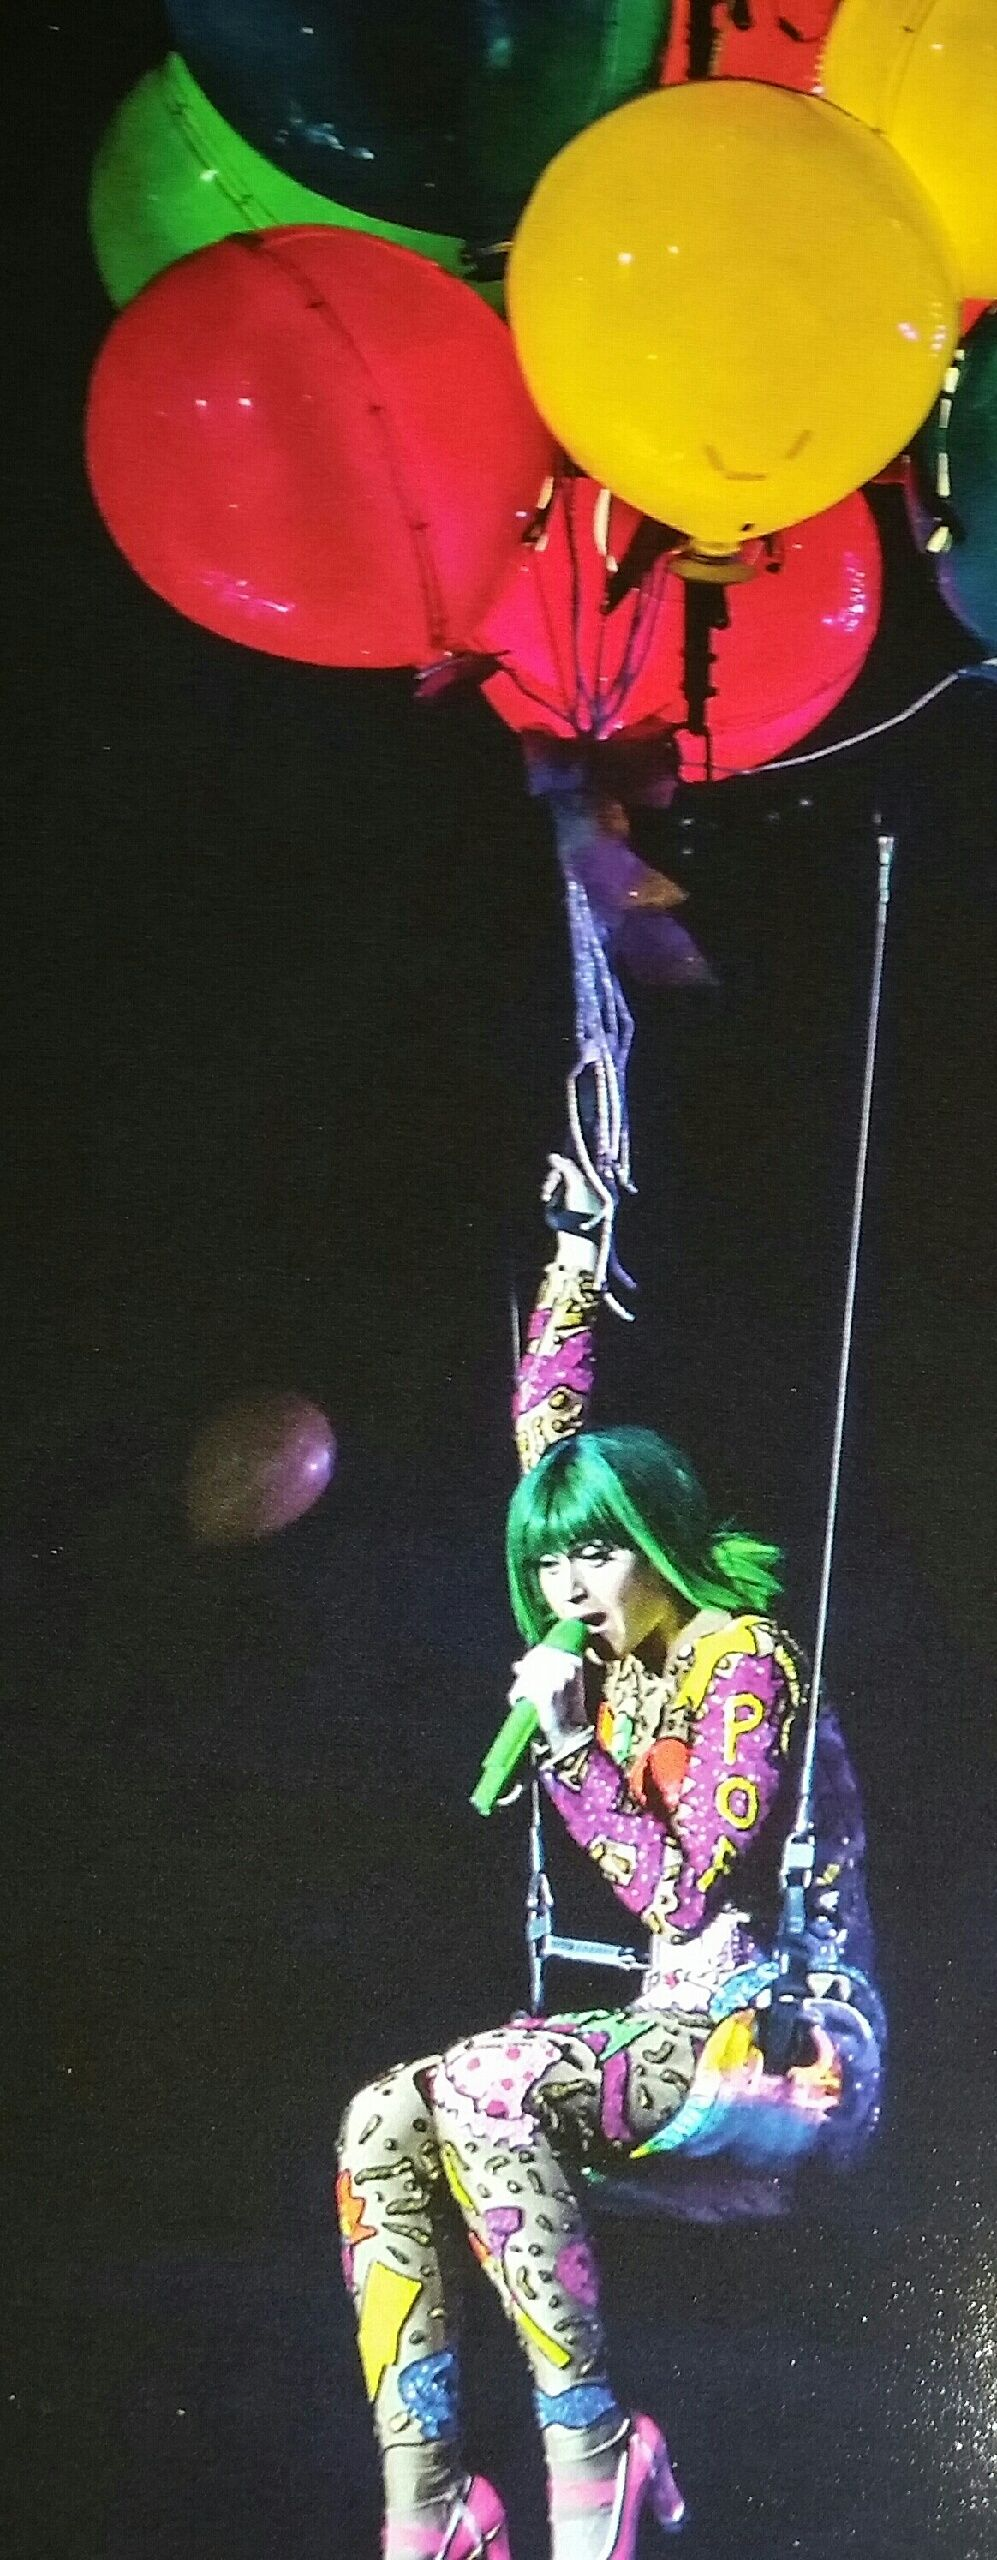 Katy perry floating above us in balloons Christmas